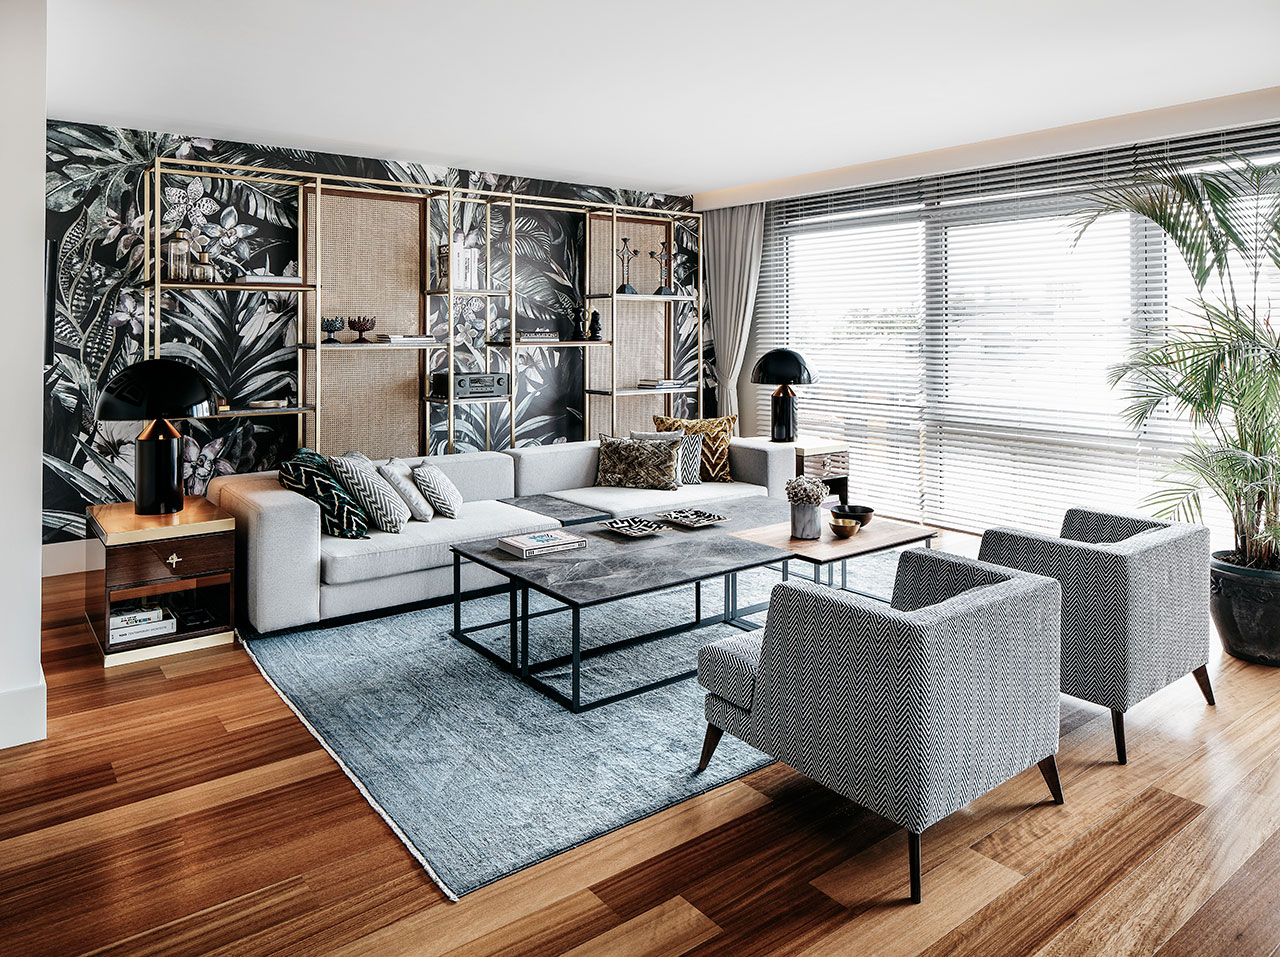 Design by  Escape from Sofa  | Photography by  Ibrahim Ozbunar